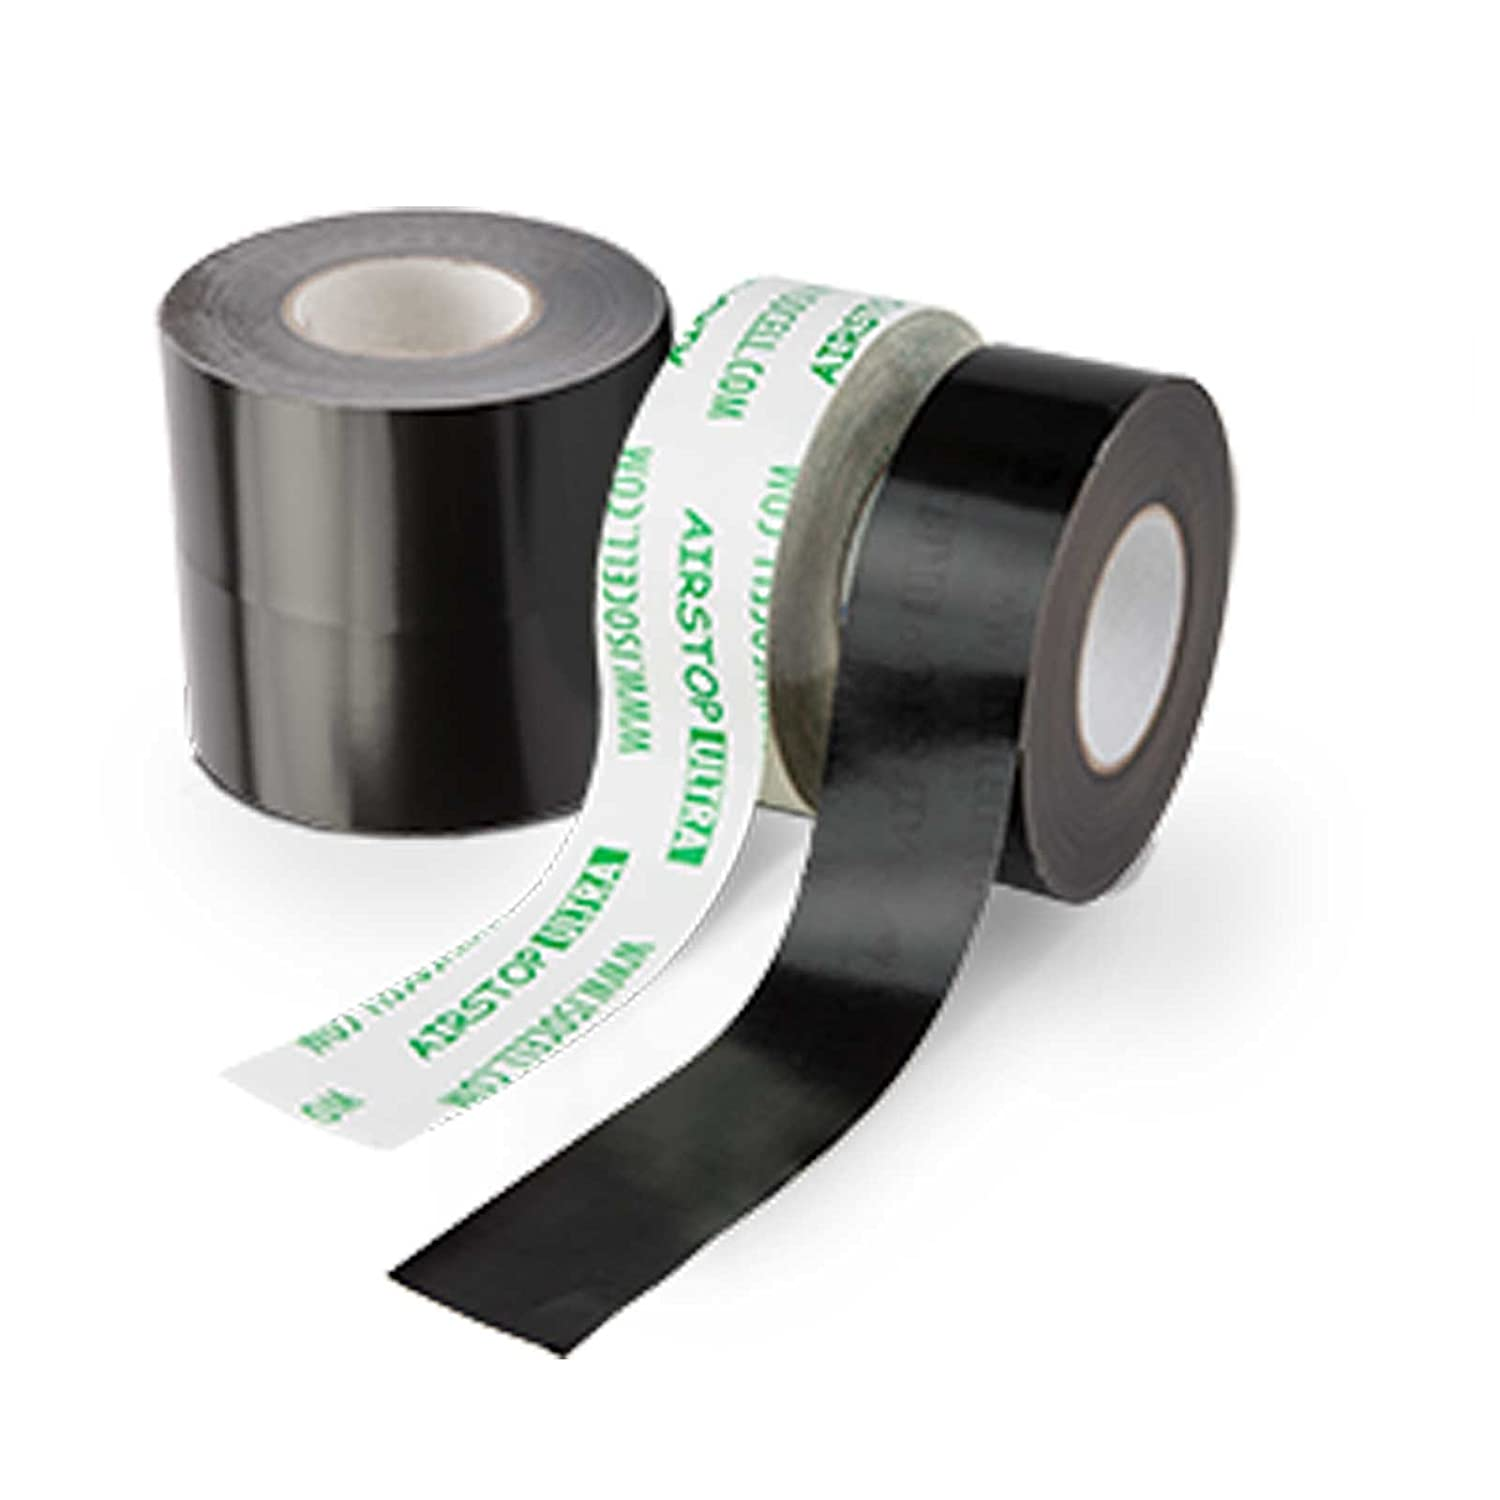 50mm Isocell AIRSTOP ELASTO Klebeband